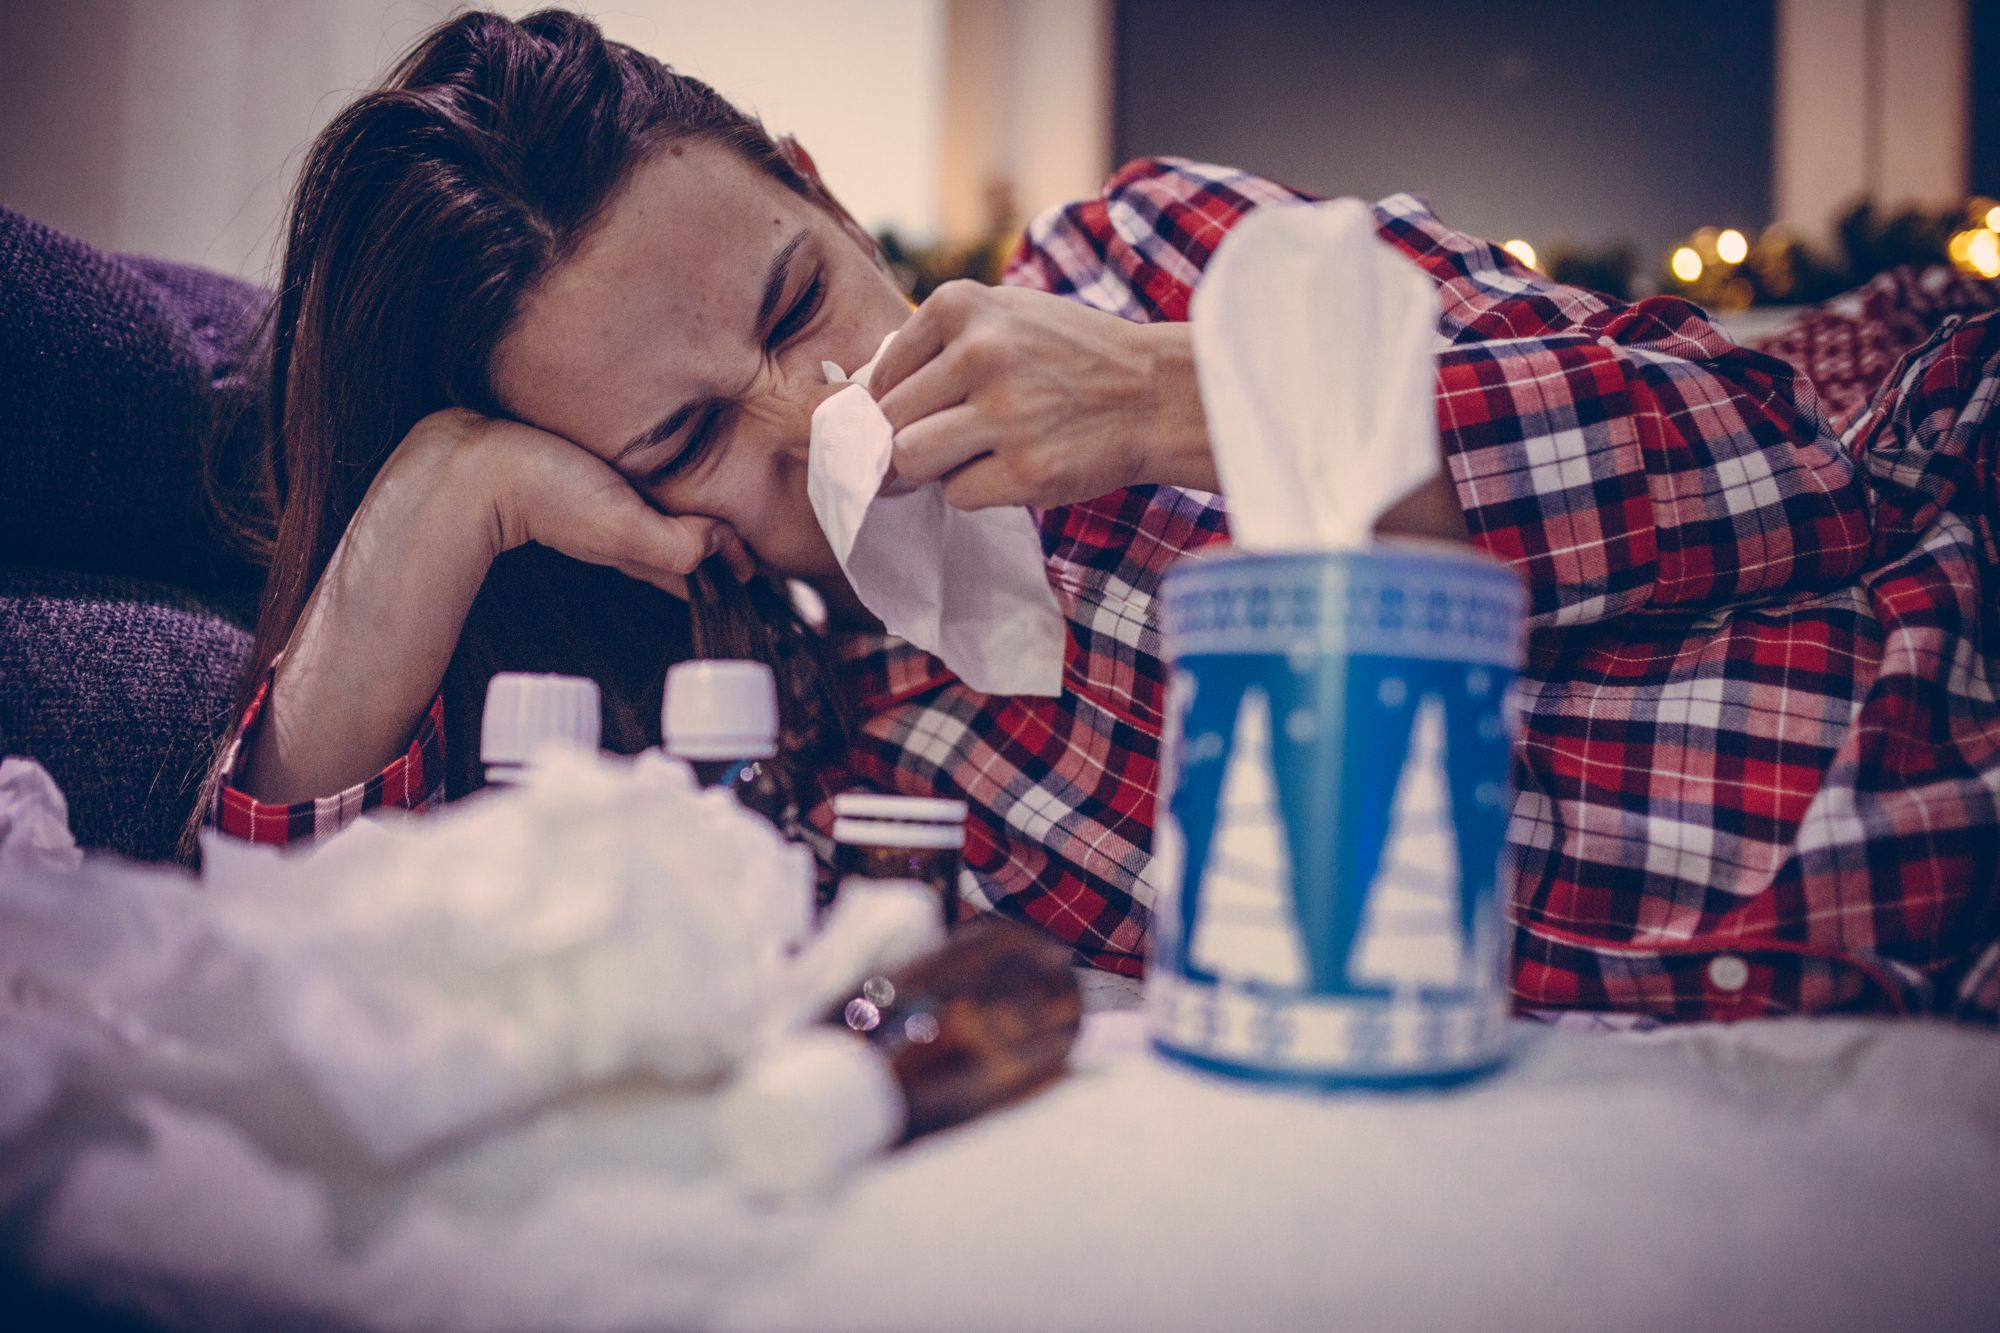 The FDA Just Approved a New Flu Drug That Could Change How Long You're Sick